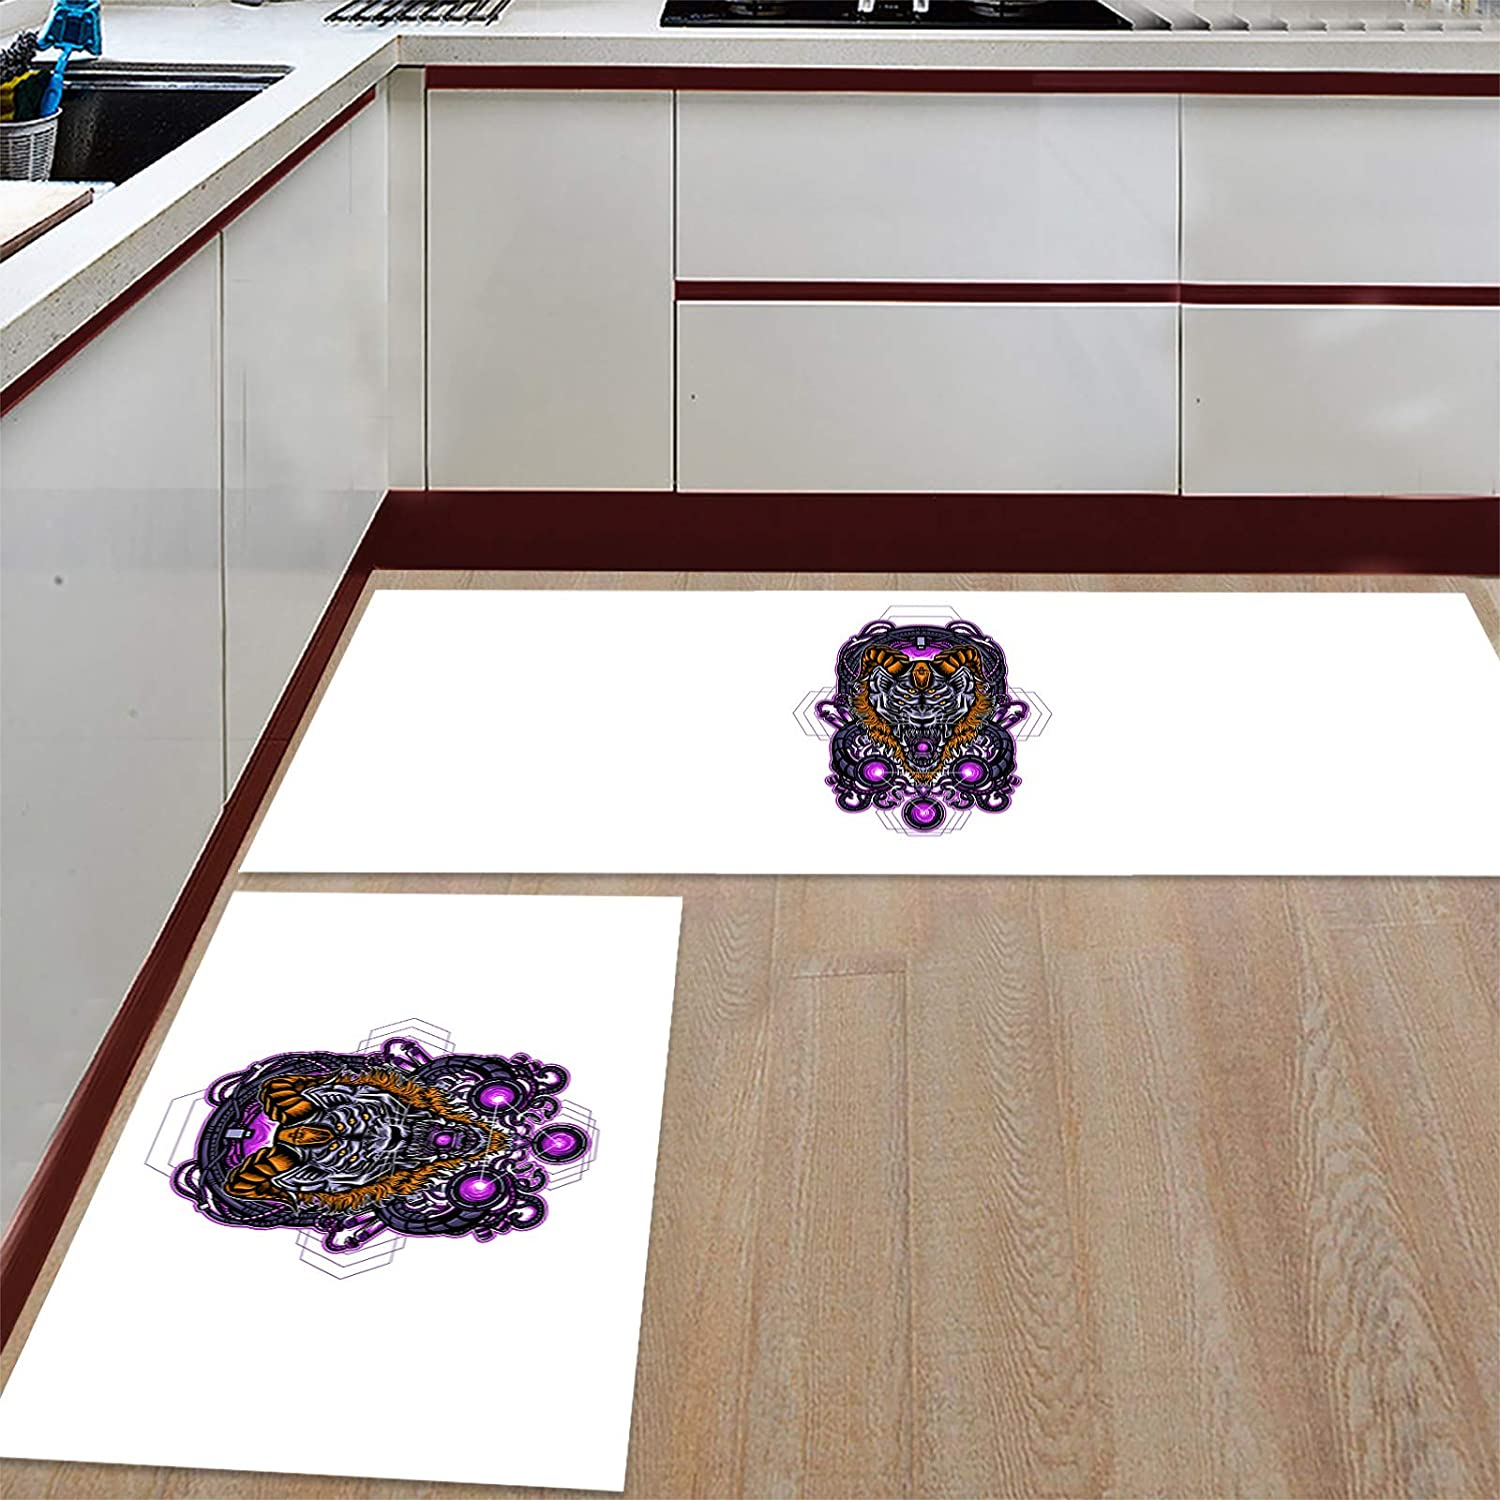 Advancey 2 Pieces Anti-Slip Kitchen Mats Simple shopping Goat Challenge the lowest price of Japan ☆ M Line with